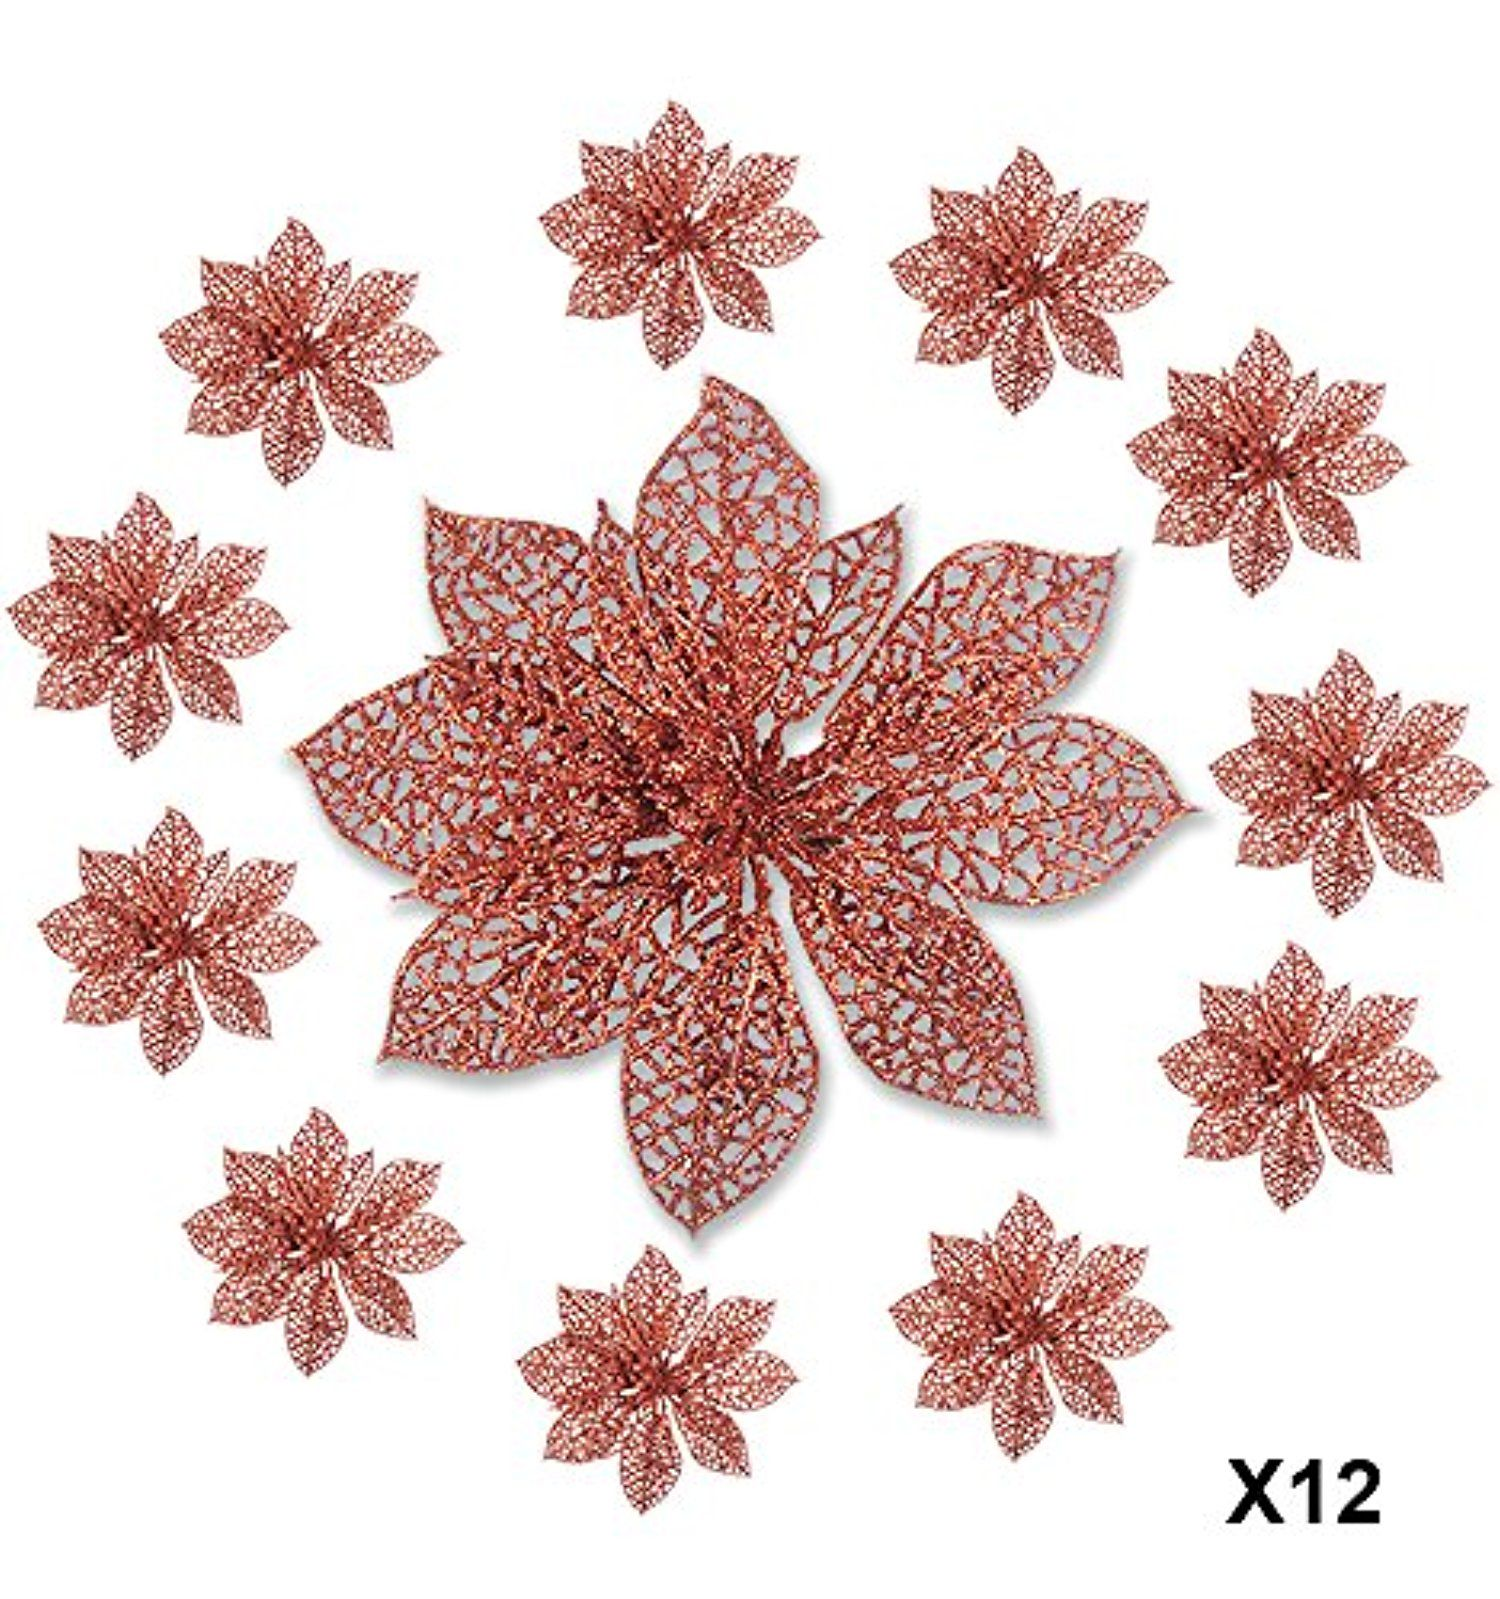 Poinsettia Clip On Ornaments Pack Of 12 Glitter Poinsettia Flowers With Metal Clip Holiday Decorations Artif Poinsettia Flower Wreath Decor Holiday Decor